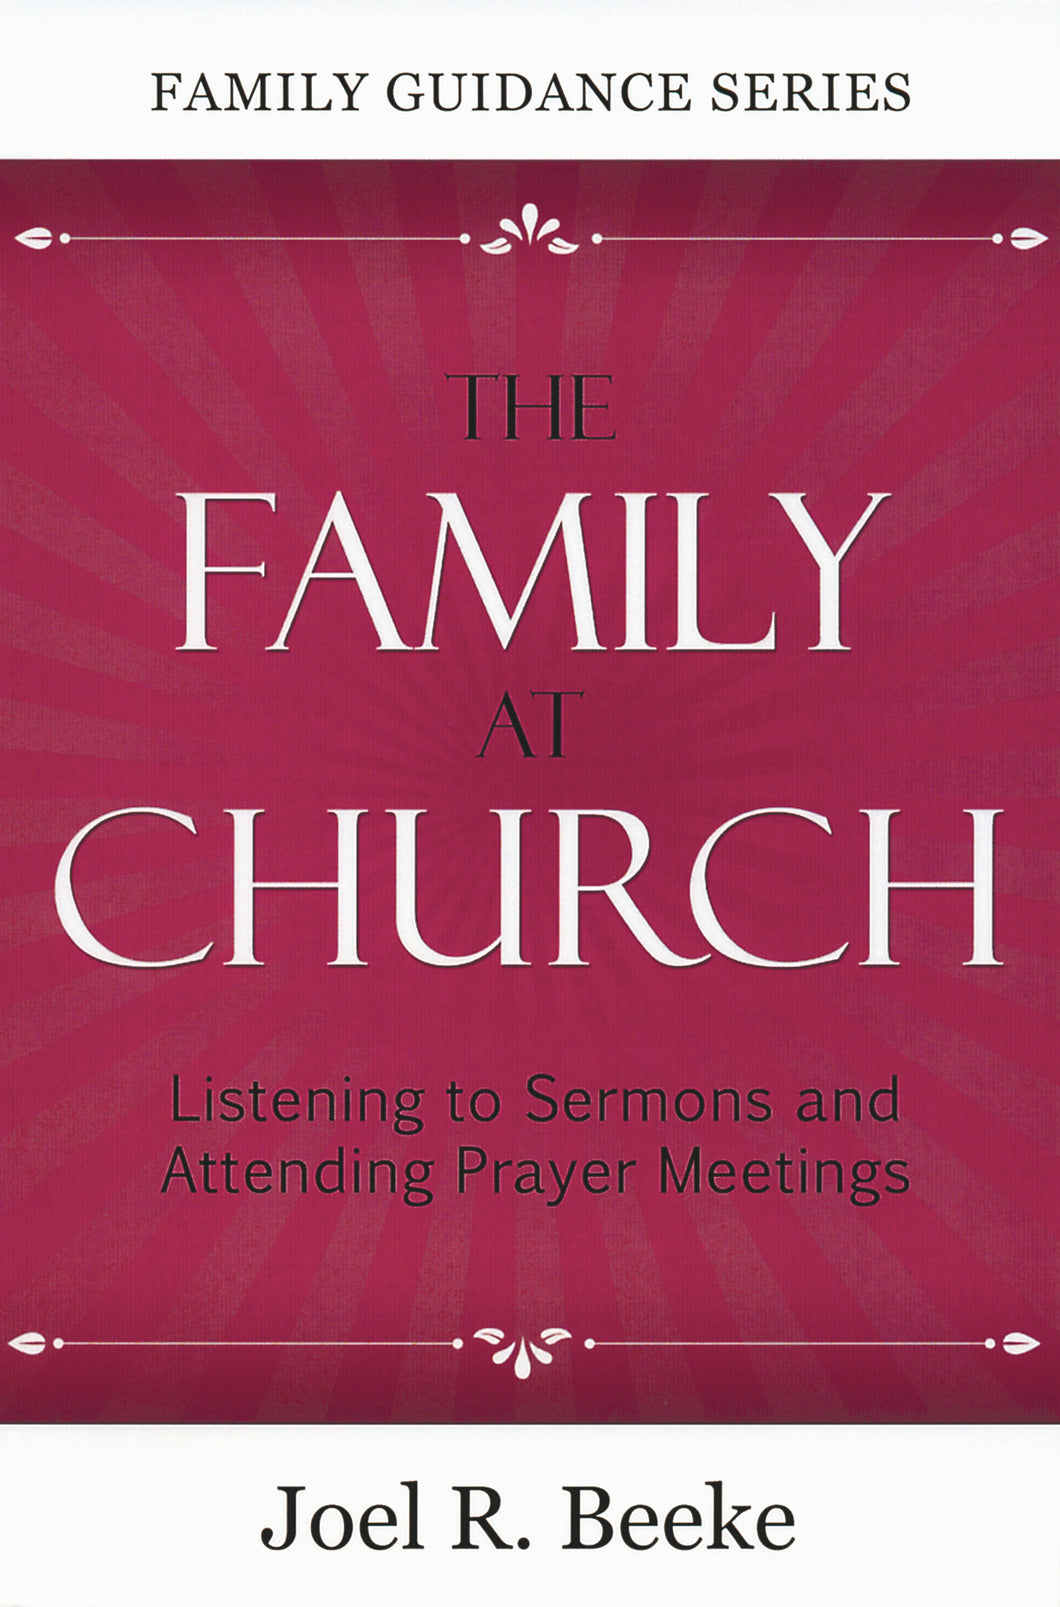 The Family at Church: Listening to Sermons and Attending Prayer Meetings — Paperback